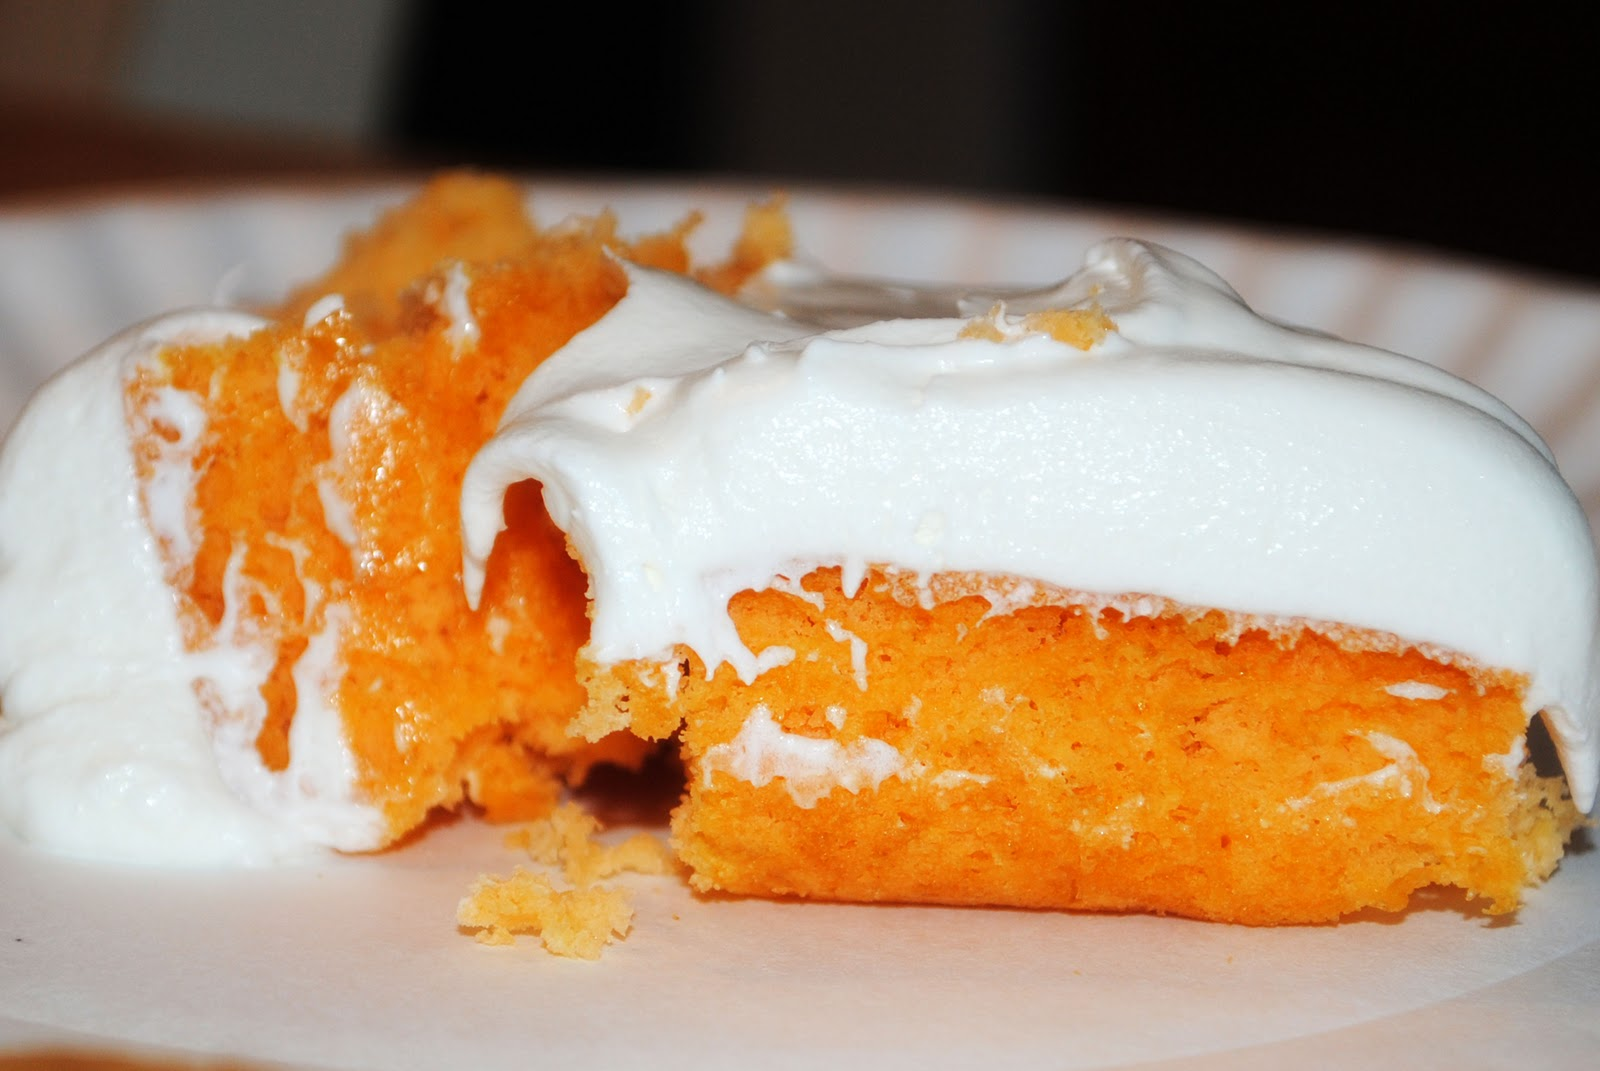 Cake Recipes In Pinterest: It's On The Tip Of My Tongue...: Project Pinterest: Orange